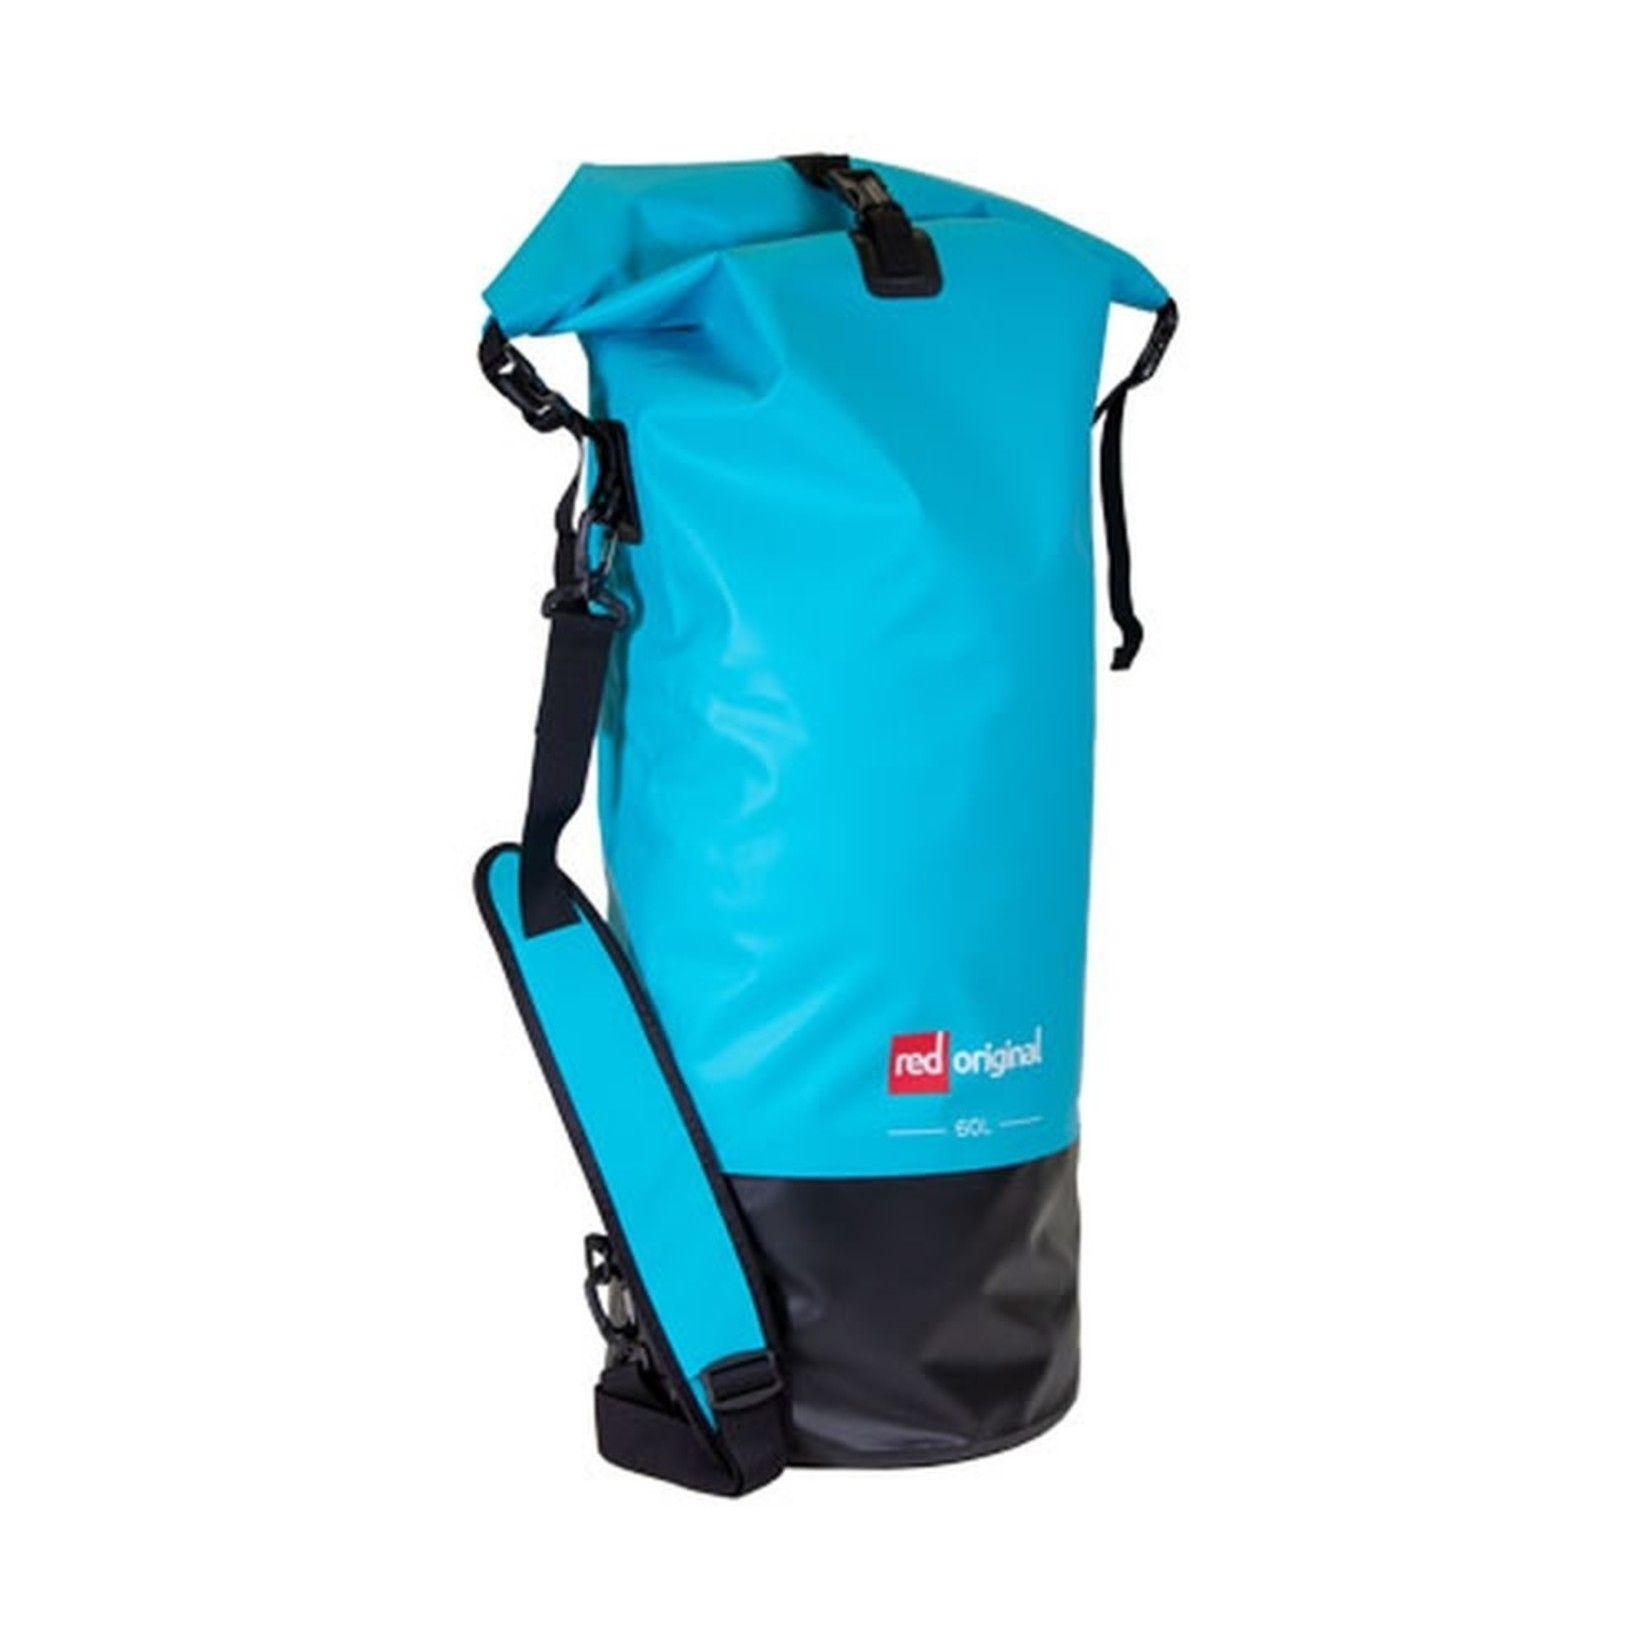 Red Paddle Co. RED Paddle Co. 30L Dry Bag